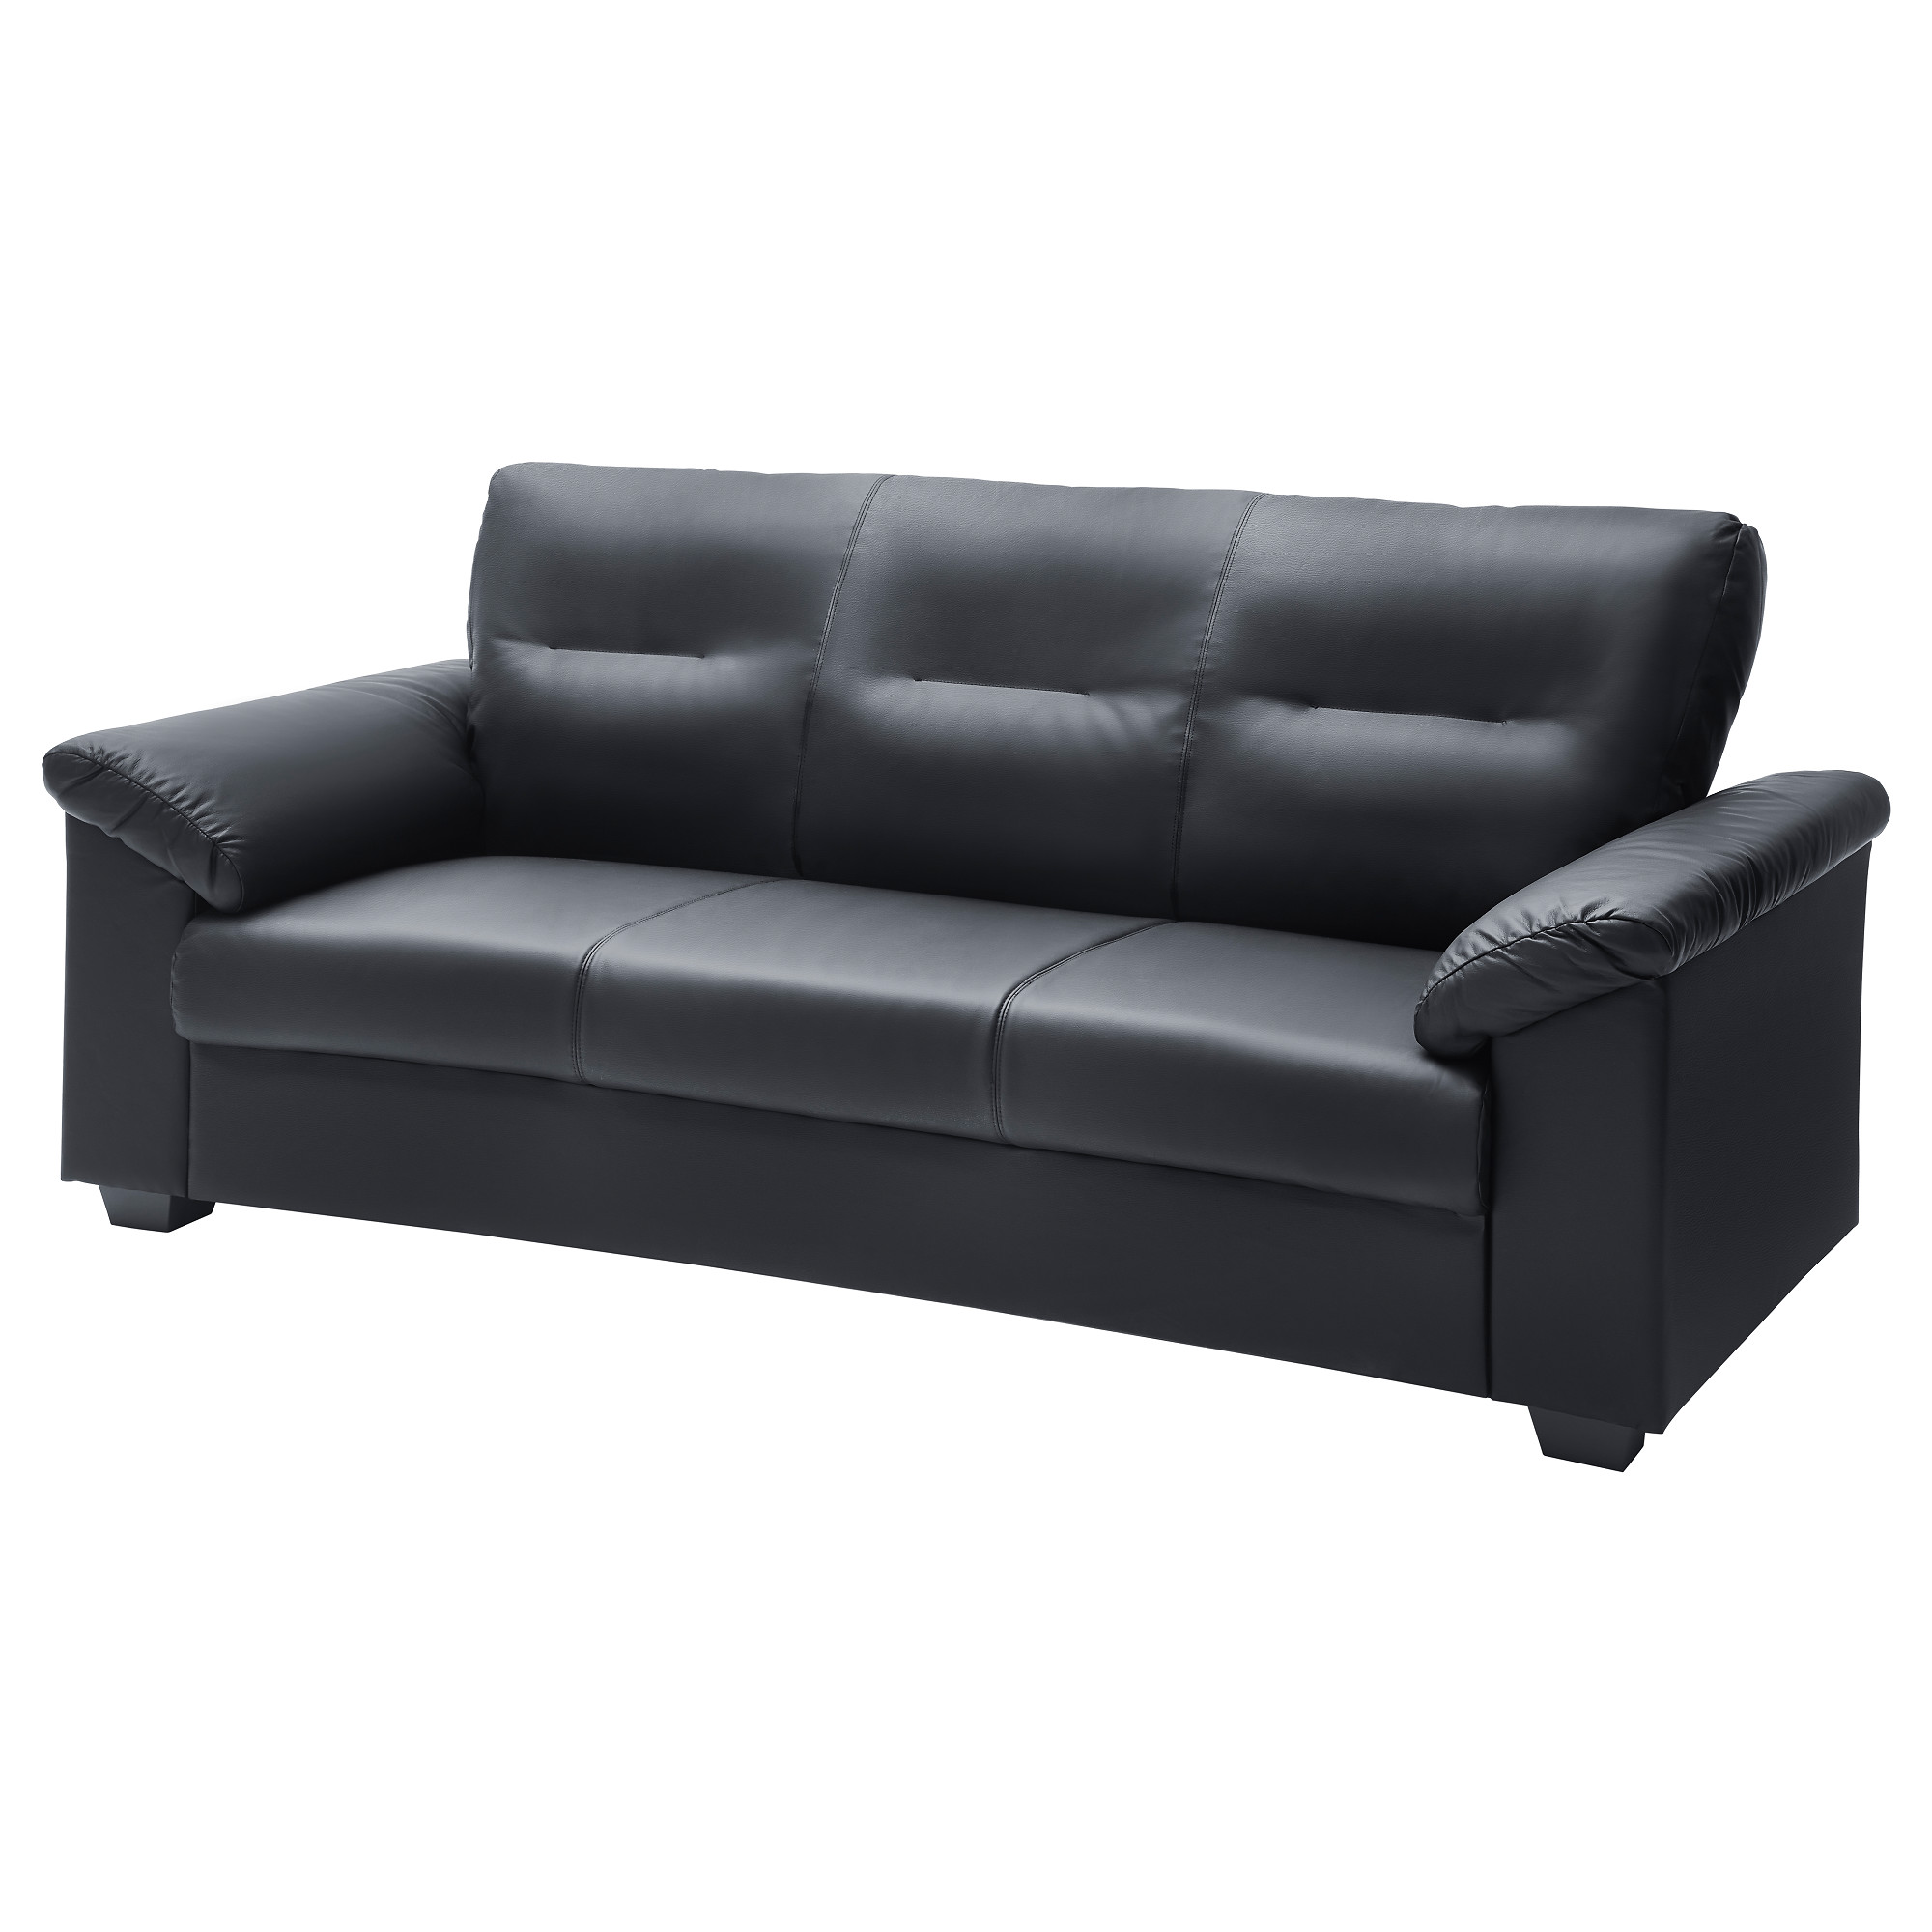 KNISLINGE sofa  Idhult black Width  80 3 4   Depth  35. Leather   Faux Leather Couches  Chairs   Ottomans   IKEA